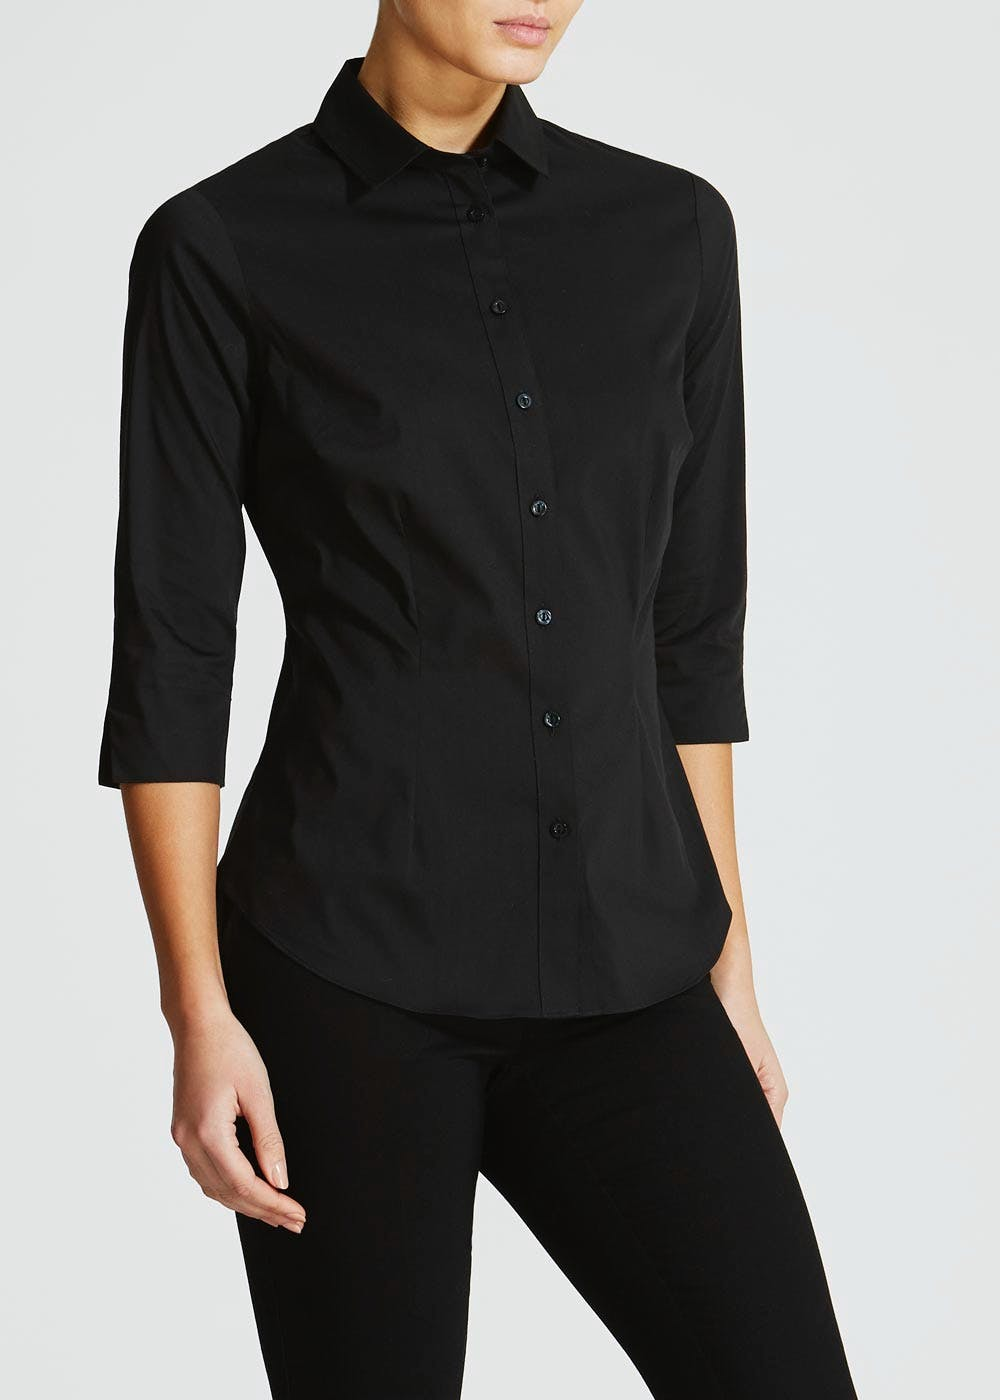 Black 3/4 Sleeve Fitted Shirt – Black